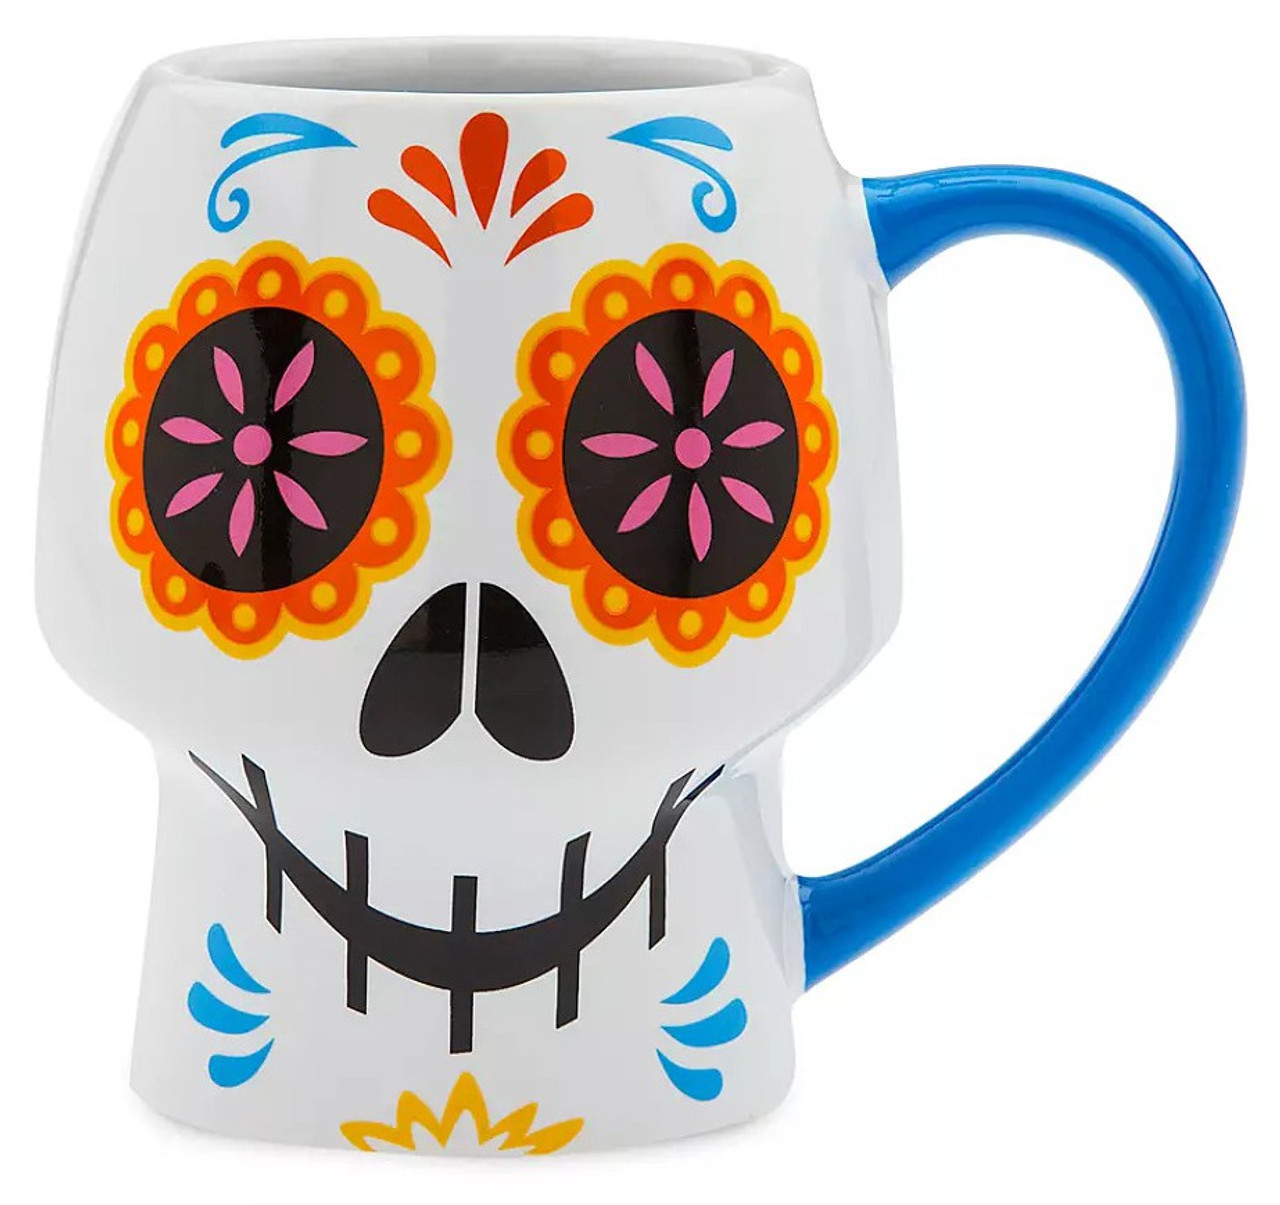 Remarkable Sugar Skull Coloring – Dialogueeurope | 1205x1280